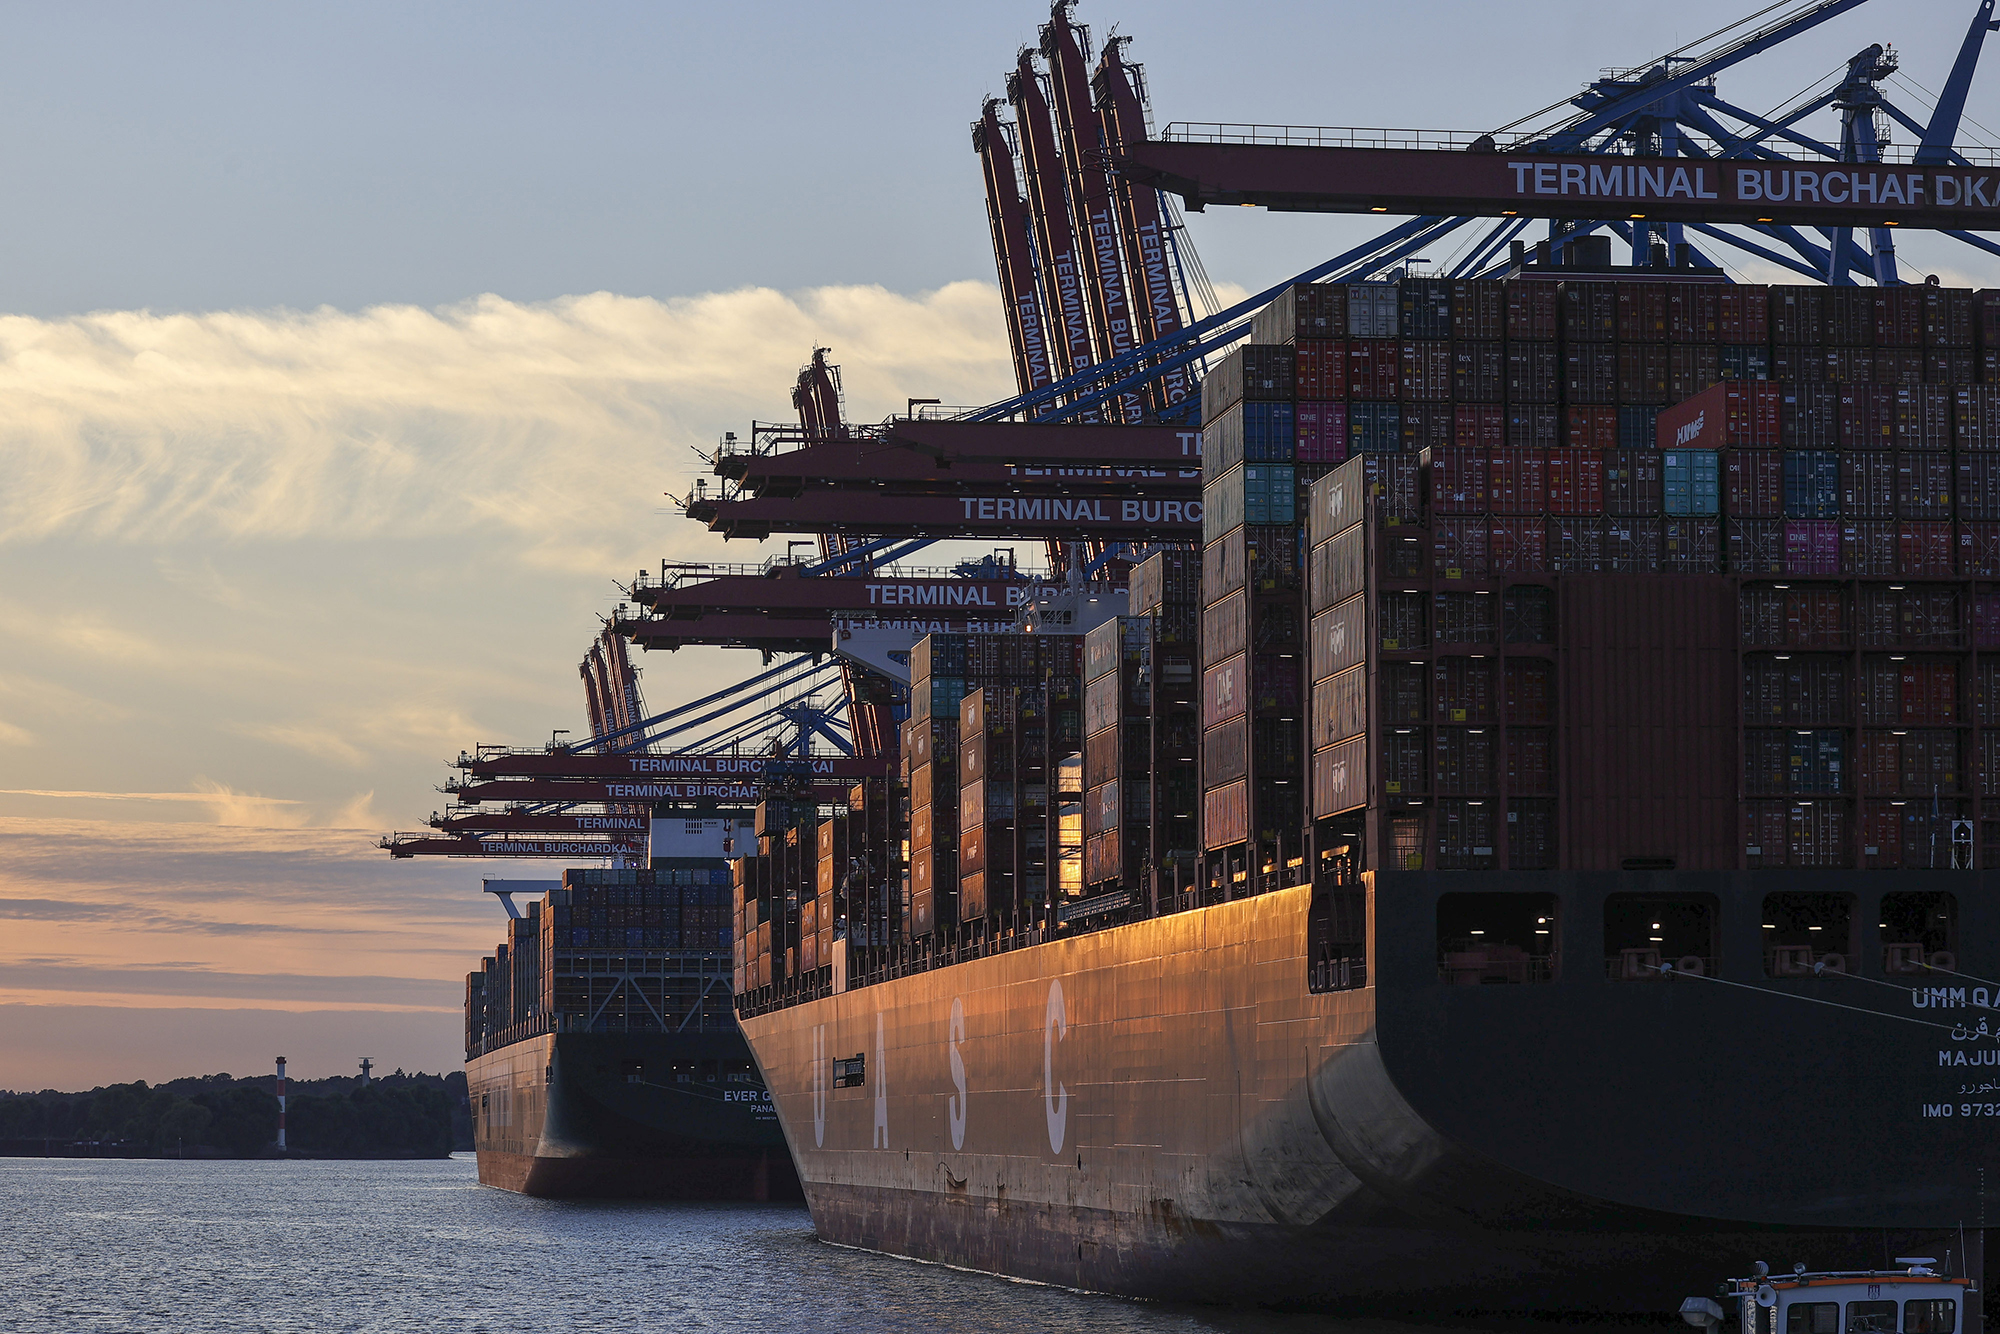 Shipping vessels from Evergreen Marine Corp and  Hapag-Lloyd AG sit docked at the HHLA Container Terminal Burchardkai at the Port of Hamburg on August 5 in Hamburg, Germany.